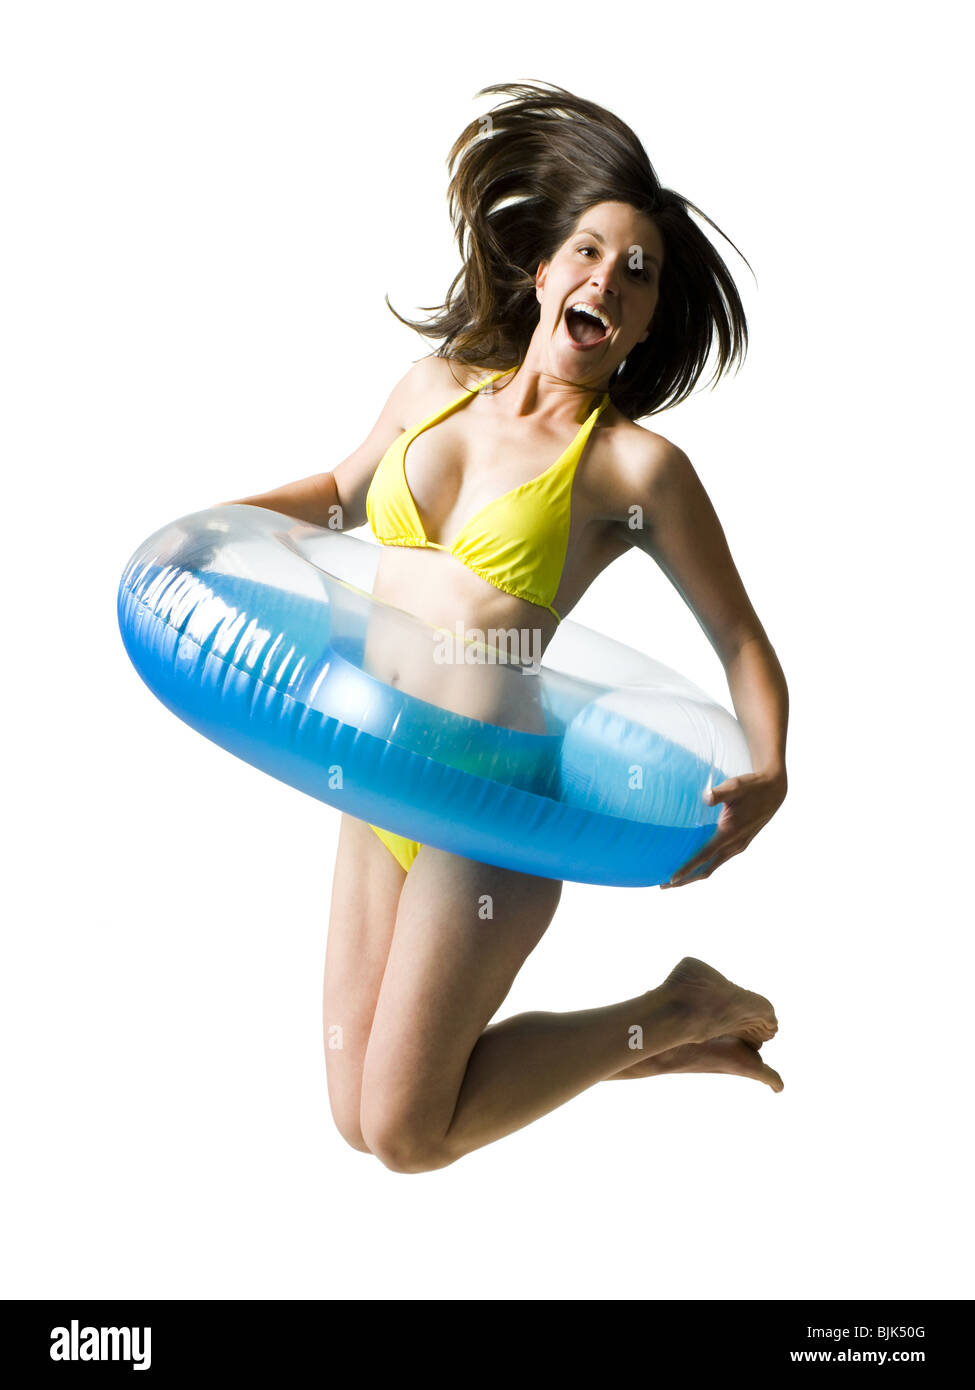 Woman in bikini with swimming ring around waist jumping and smiling Stock Photo